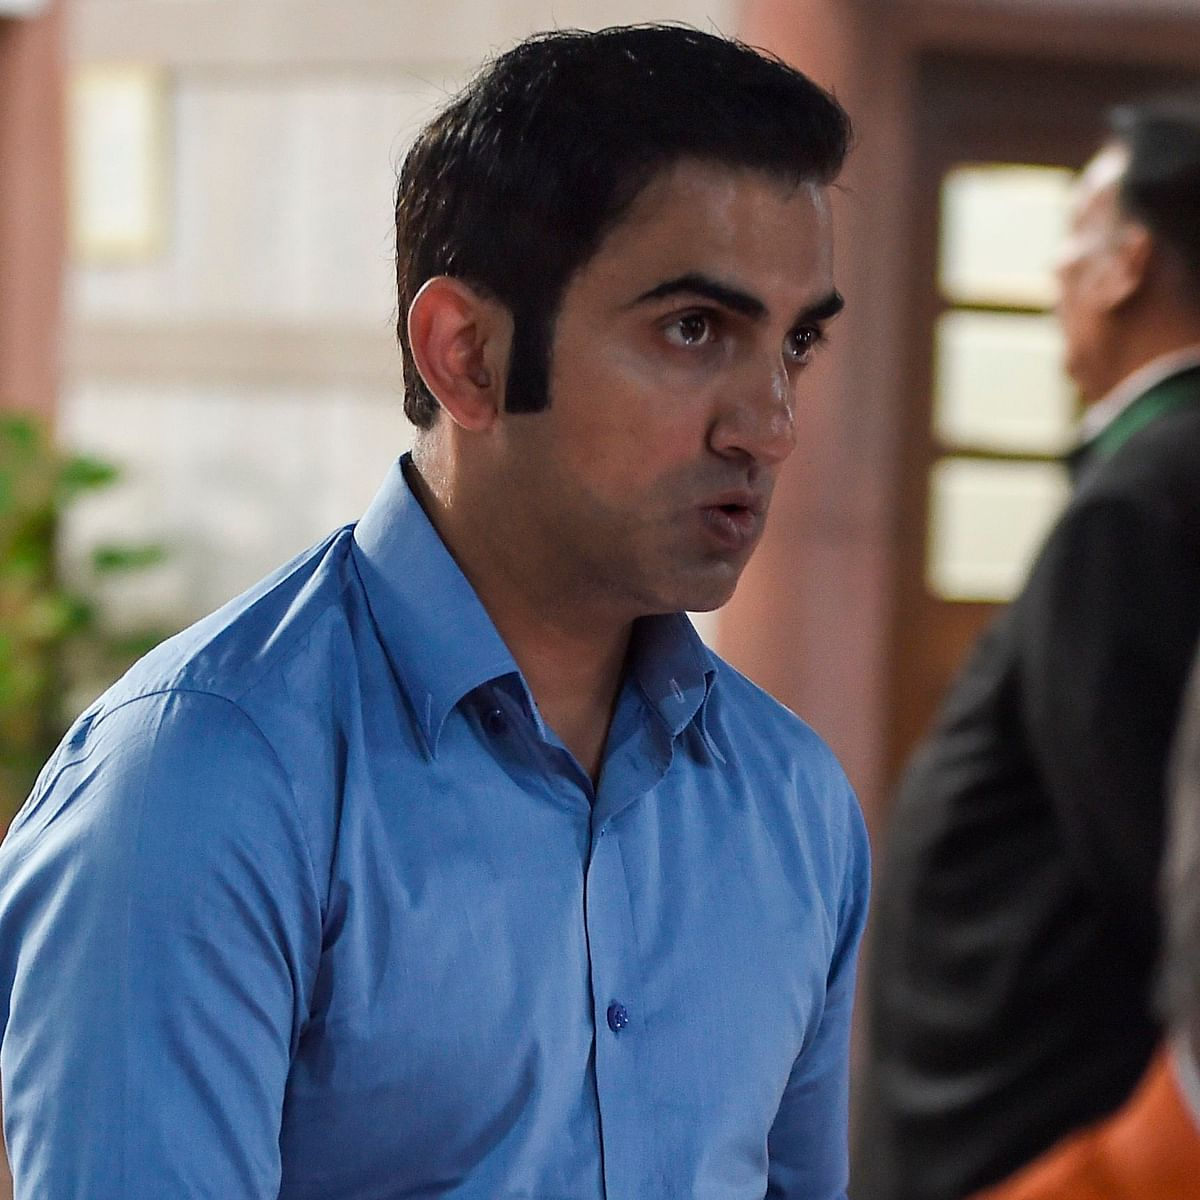 'Is it even legal?': Twitter reacts after Gautam Gambhir offers free 'Fabiflu' at his East Delhi office